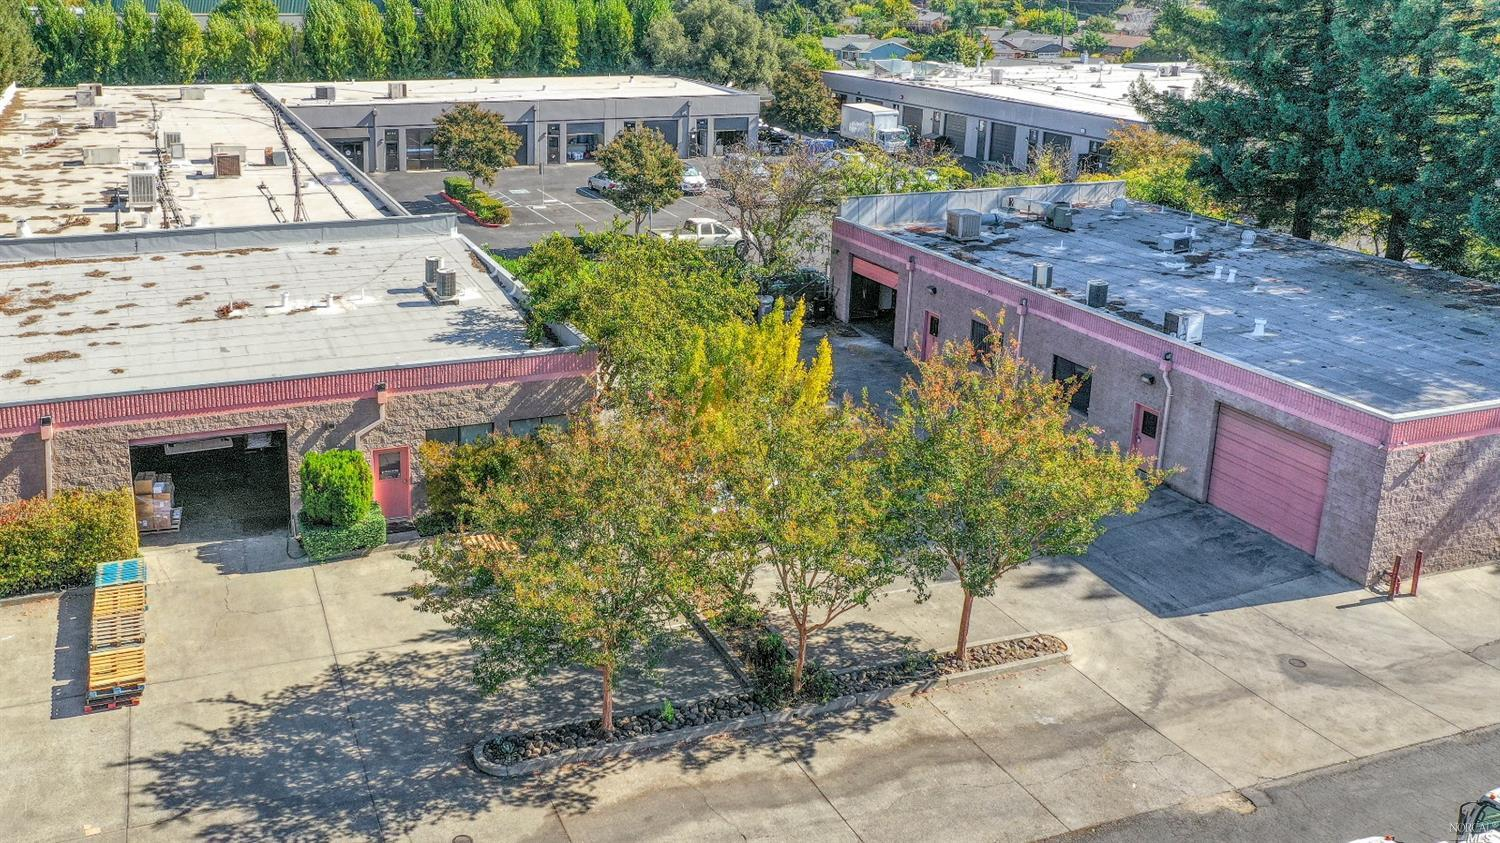 This is a rare opportunity to own a fully leased NNN commercial property with a cannabis licensed te